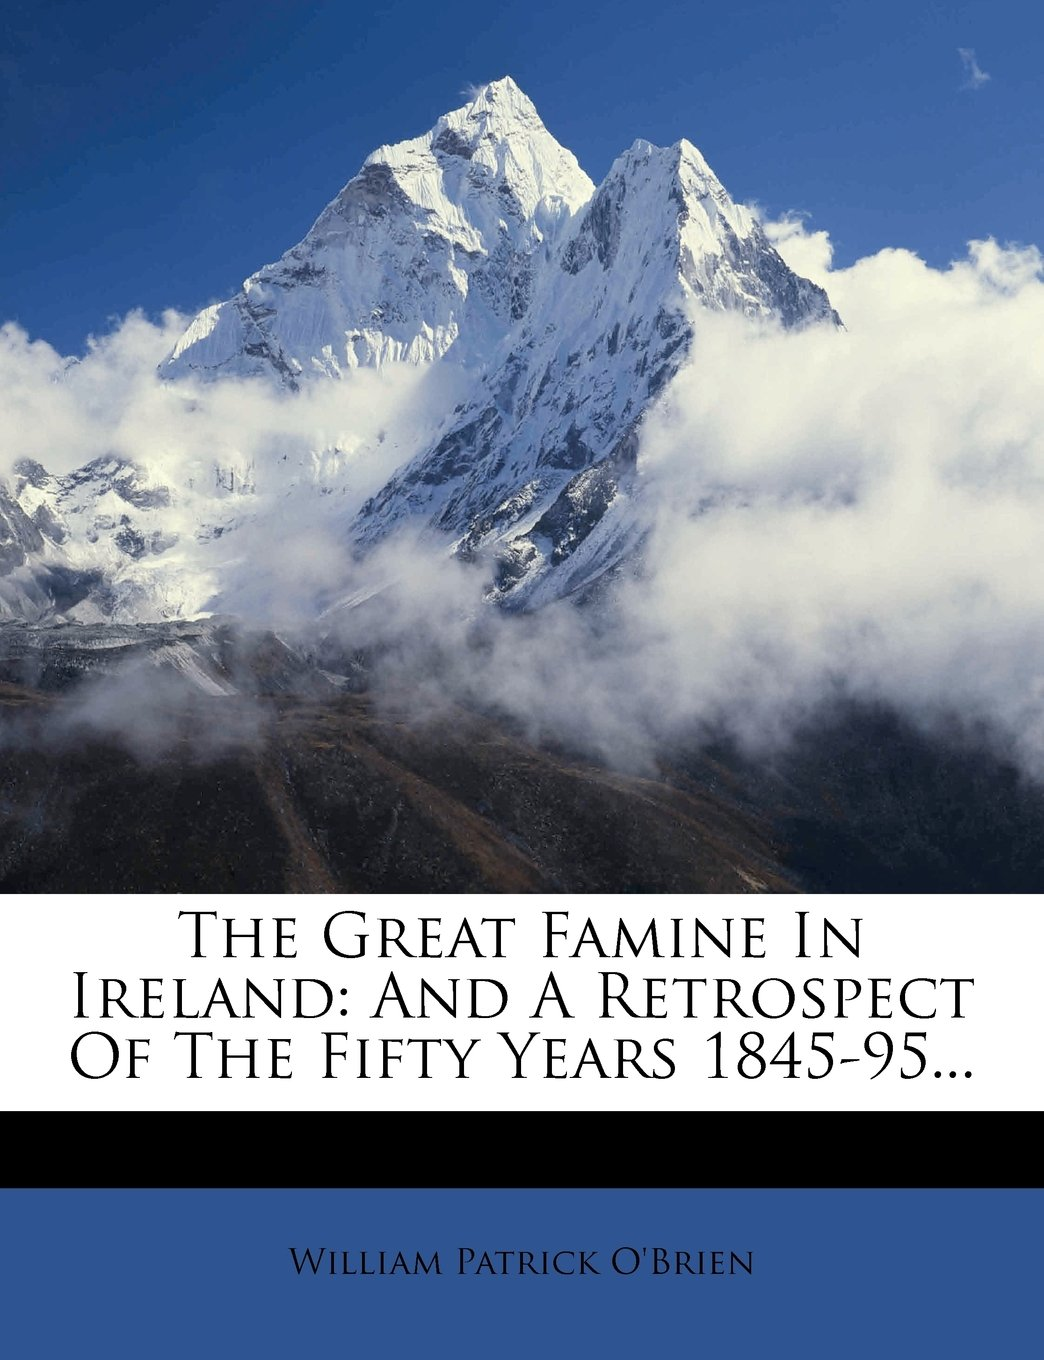 The Great Famine In Ireland: And A Retrospect Of The Fifty Years 1845-95... PDF